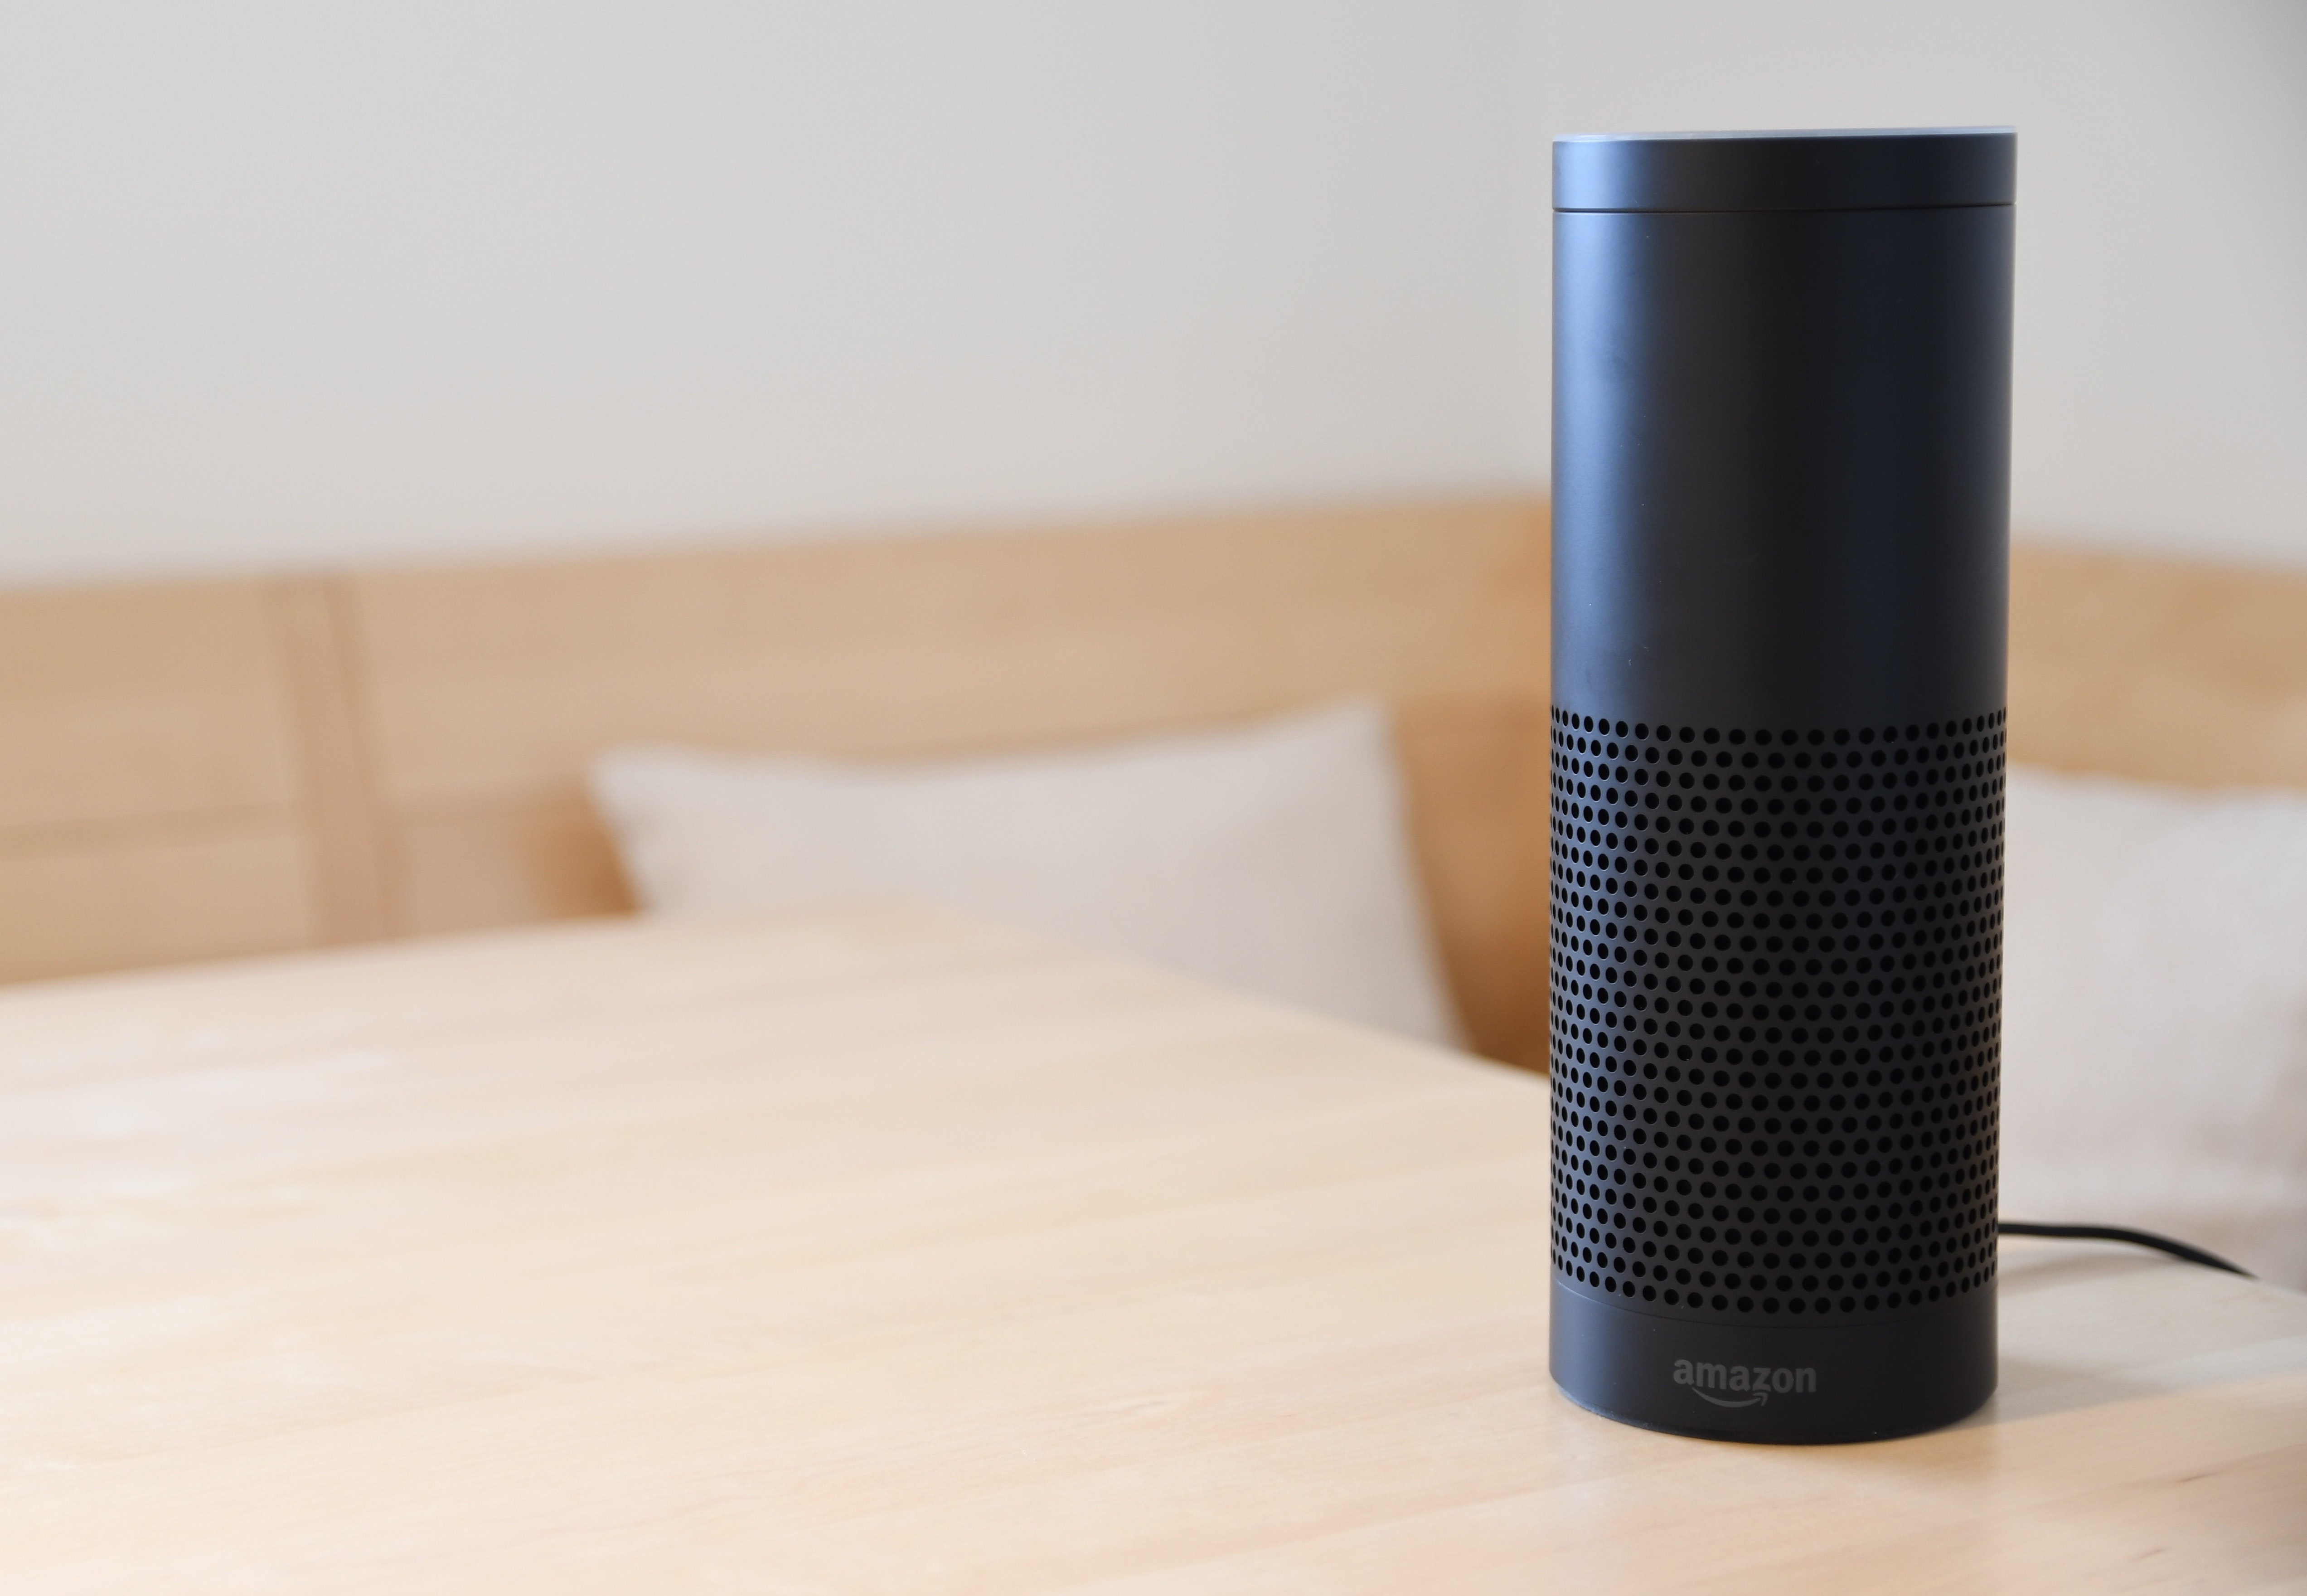 An Amazon Echo speaker sits on a table